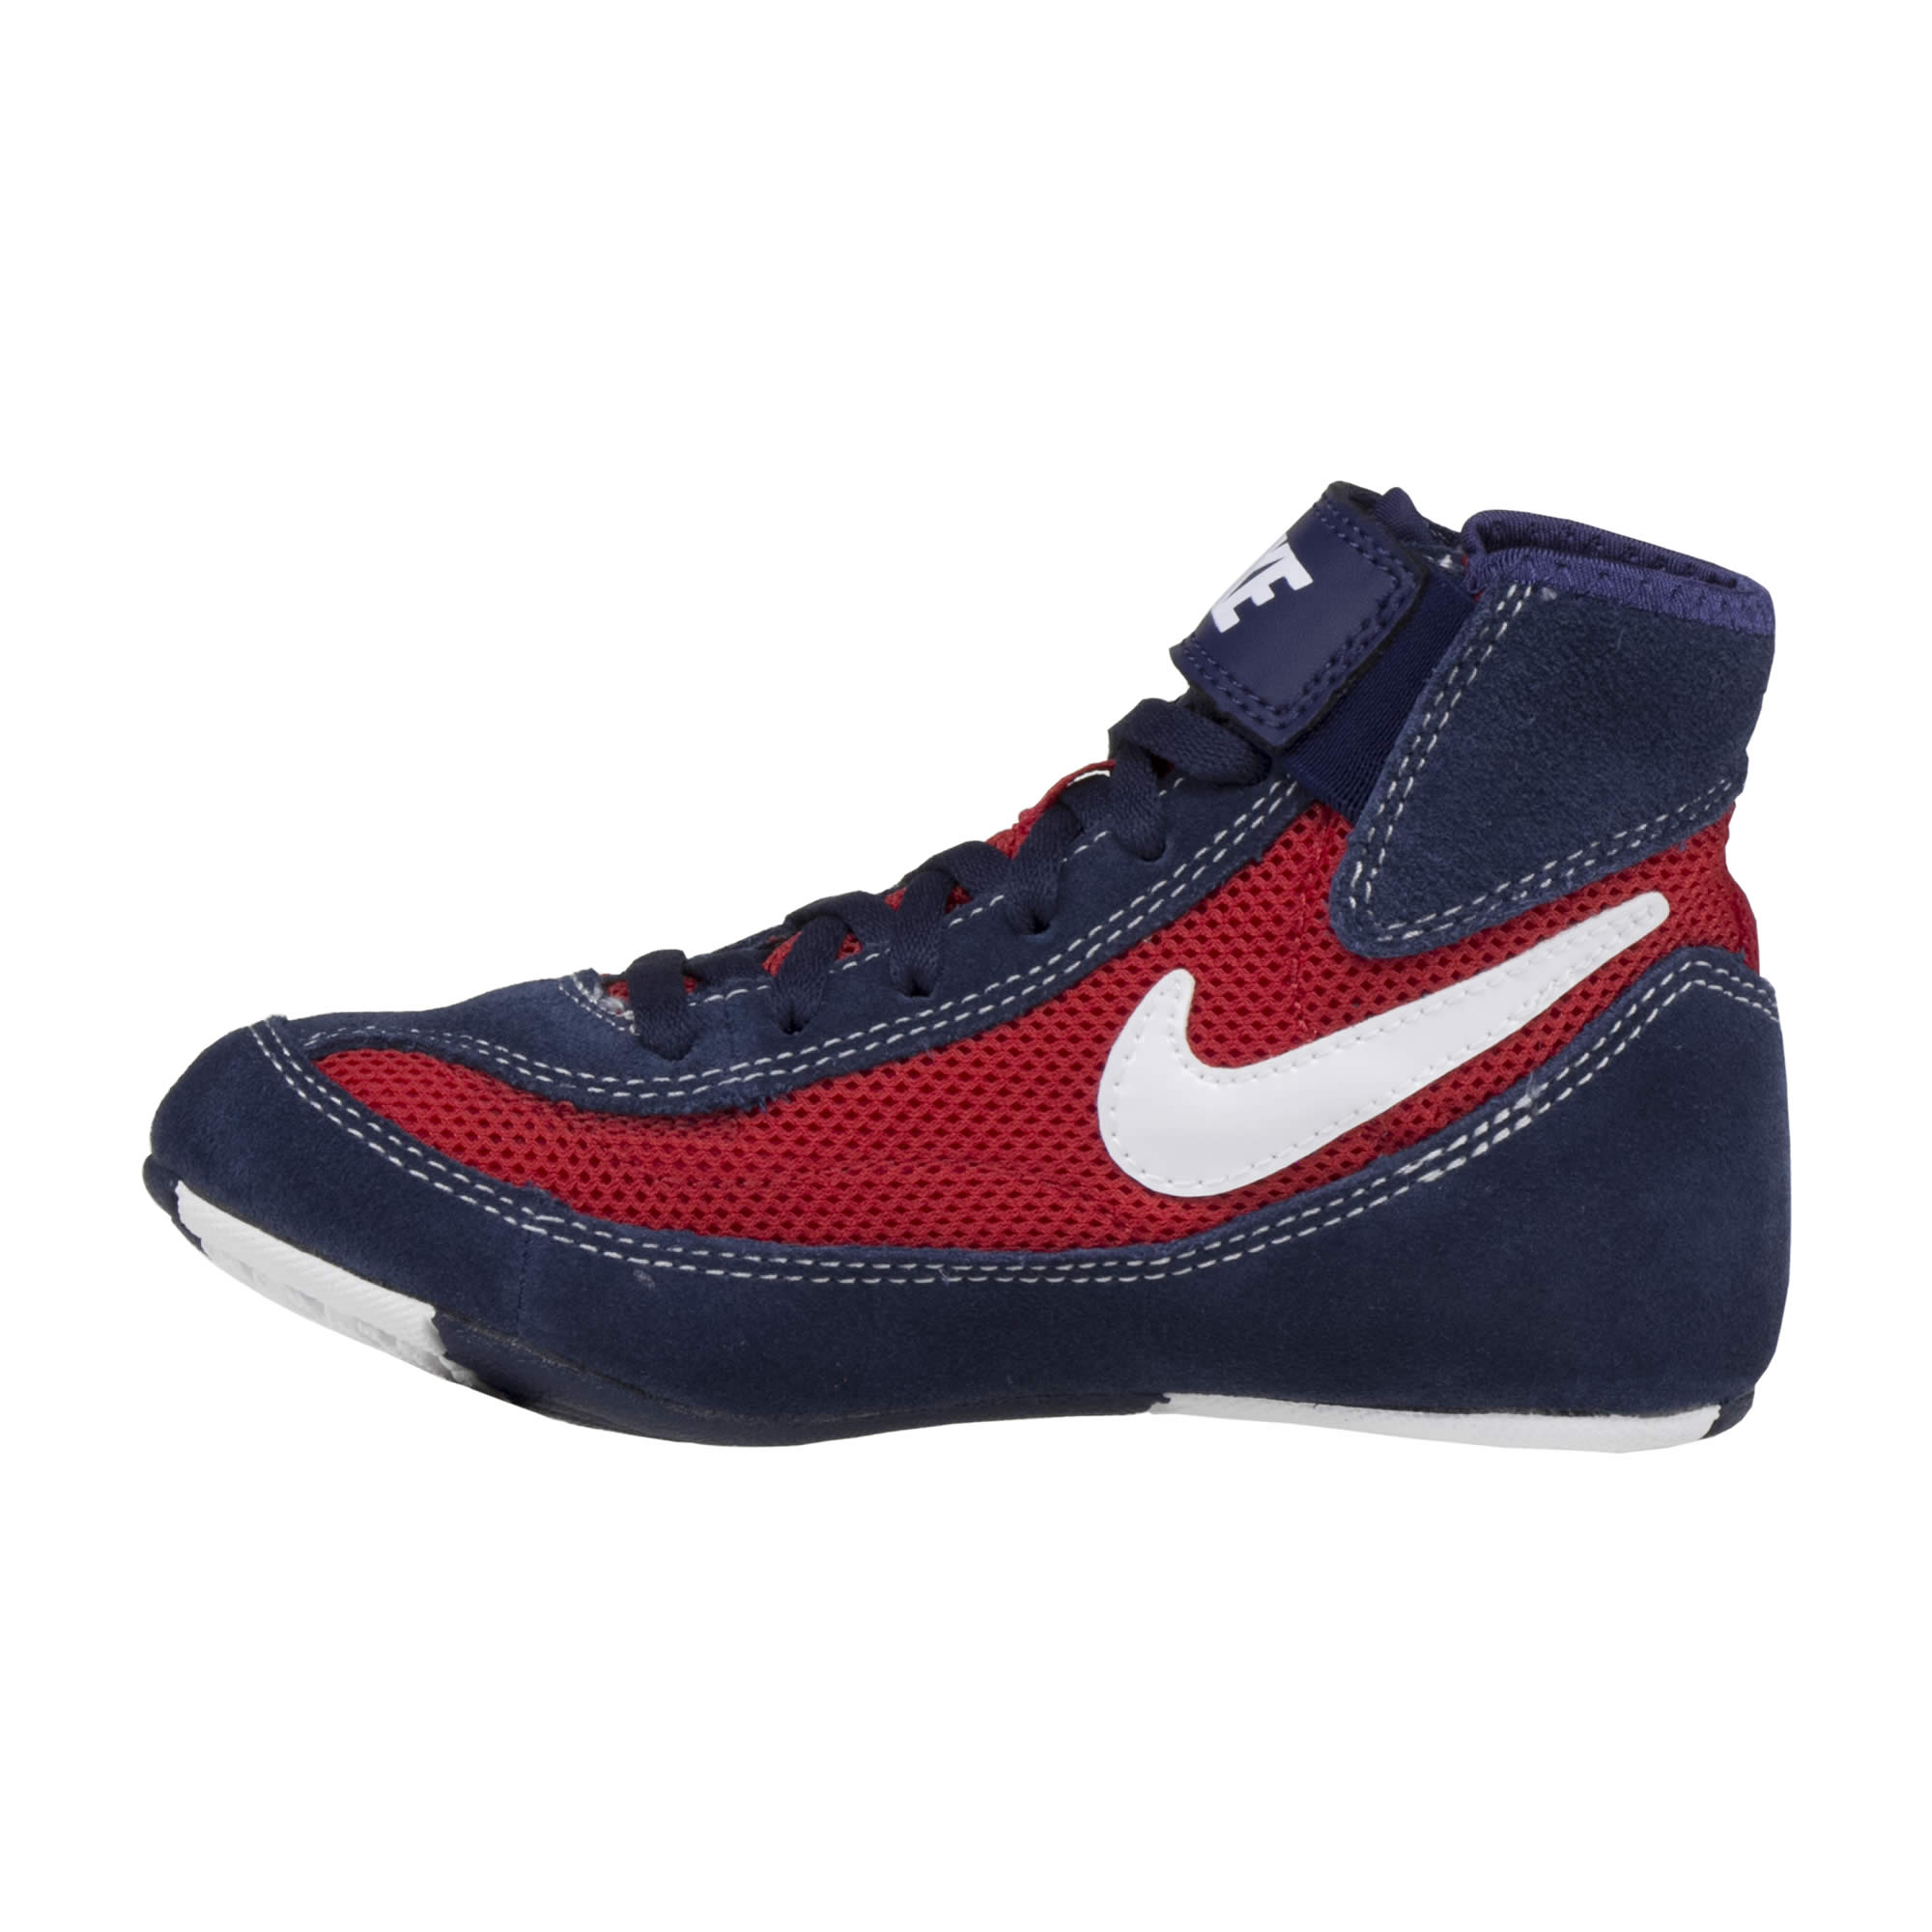 ... Youth Speed Sweep Navy Red White frontNike Youth Speed Sweep Navy Red  White backNike Youth Speed Sweep Navy Red White sole cb3f253e9896